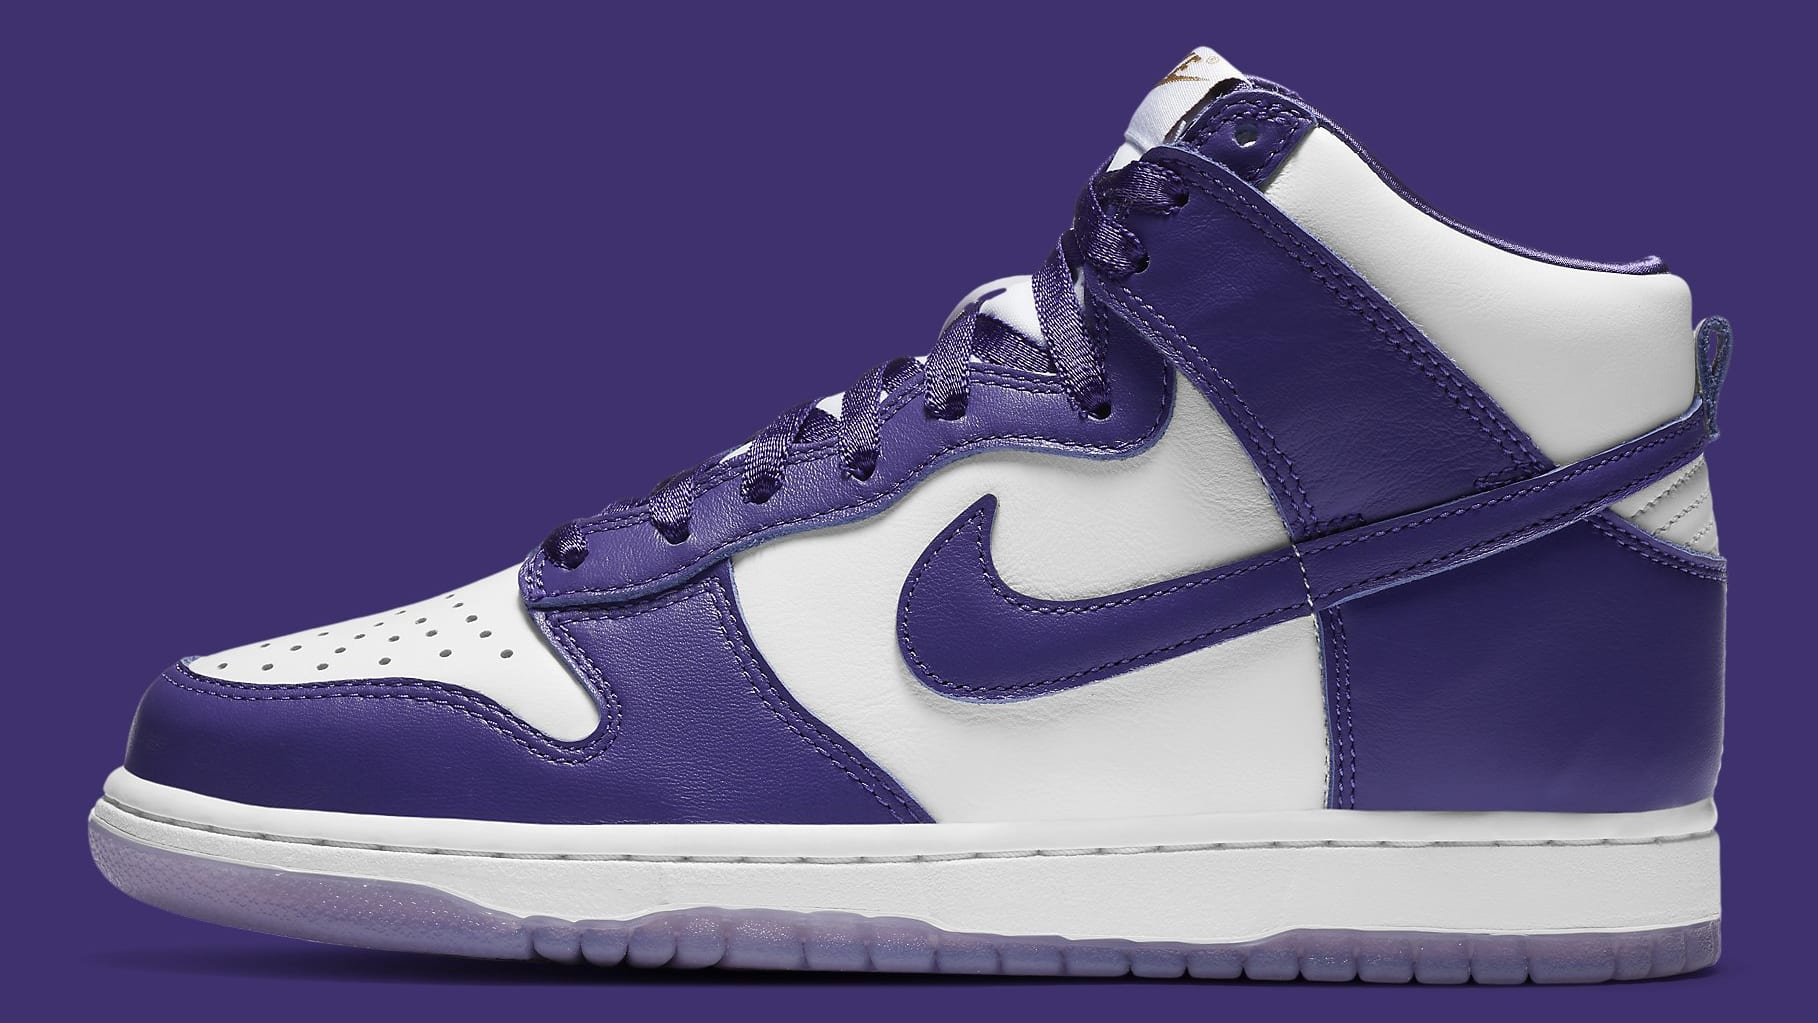 Nike Dunk High Women's Varsity Purple Release Date DC5382-100 Profile